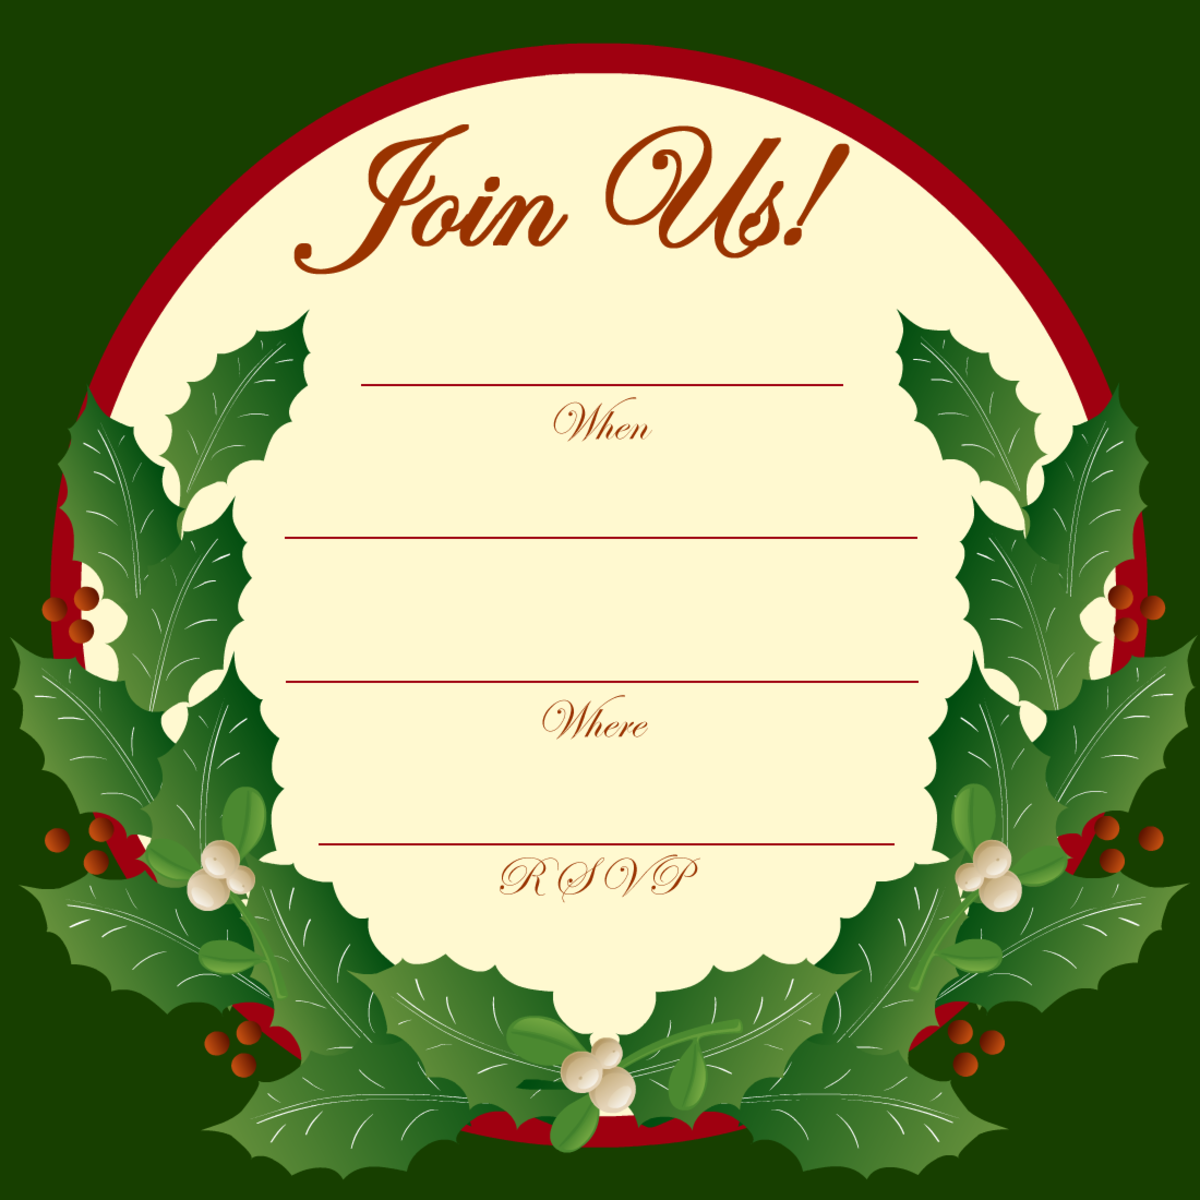 Holly and Mistletoe Invitation for a Holiday Party